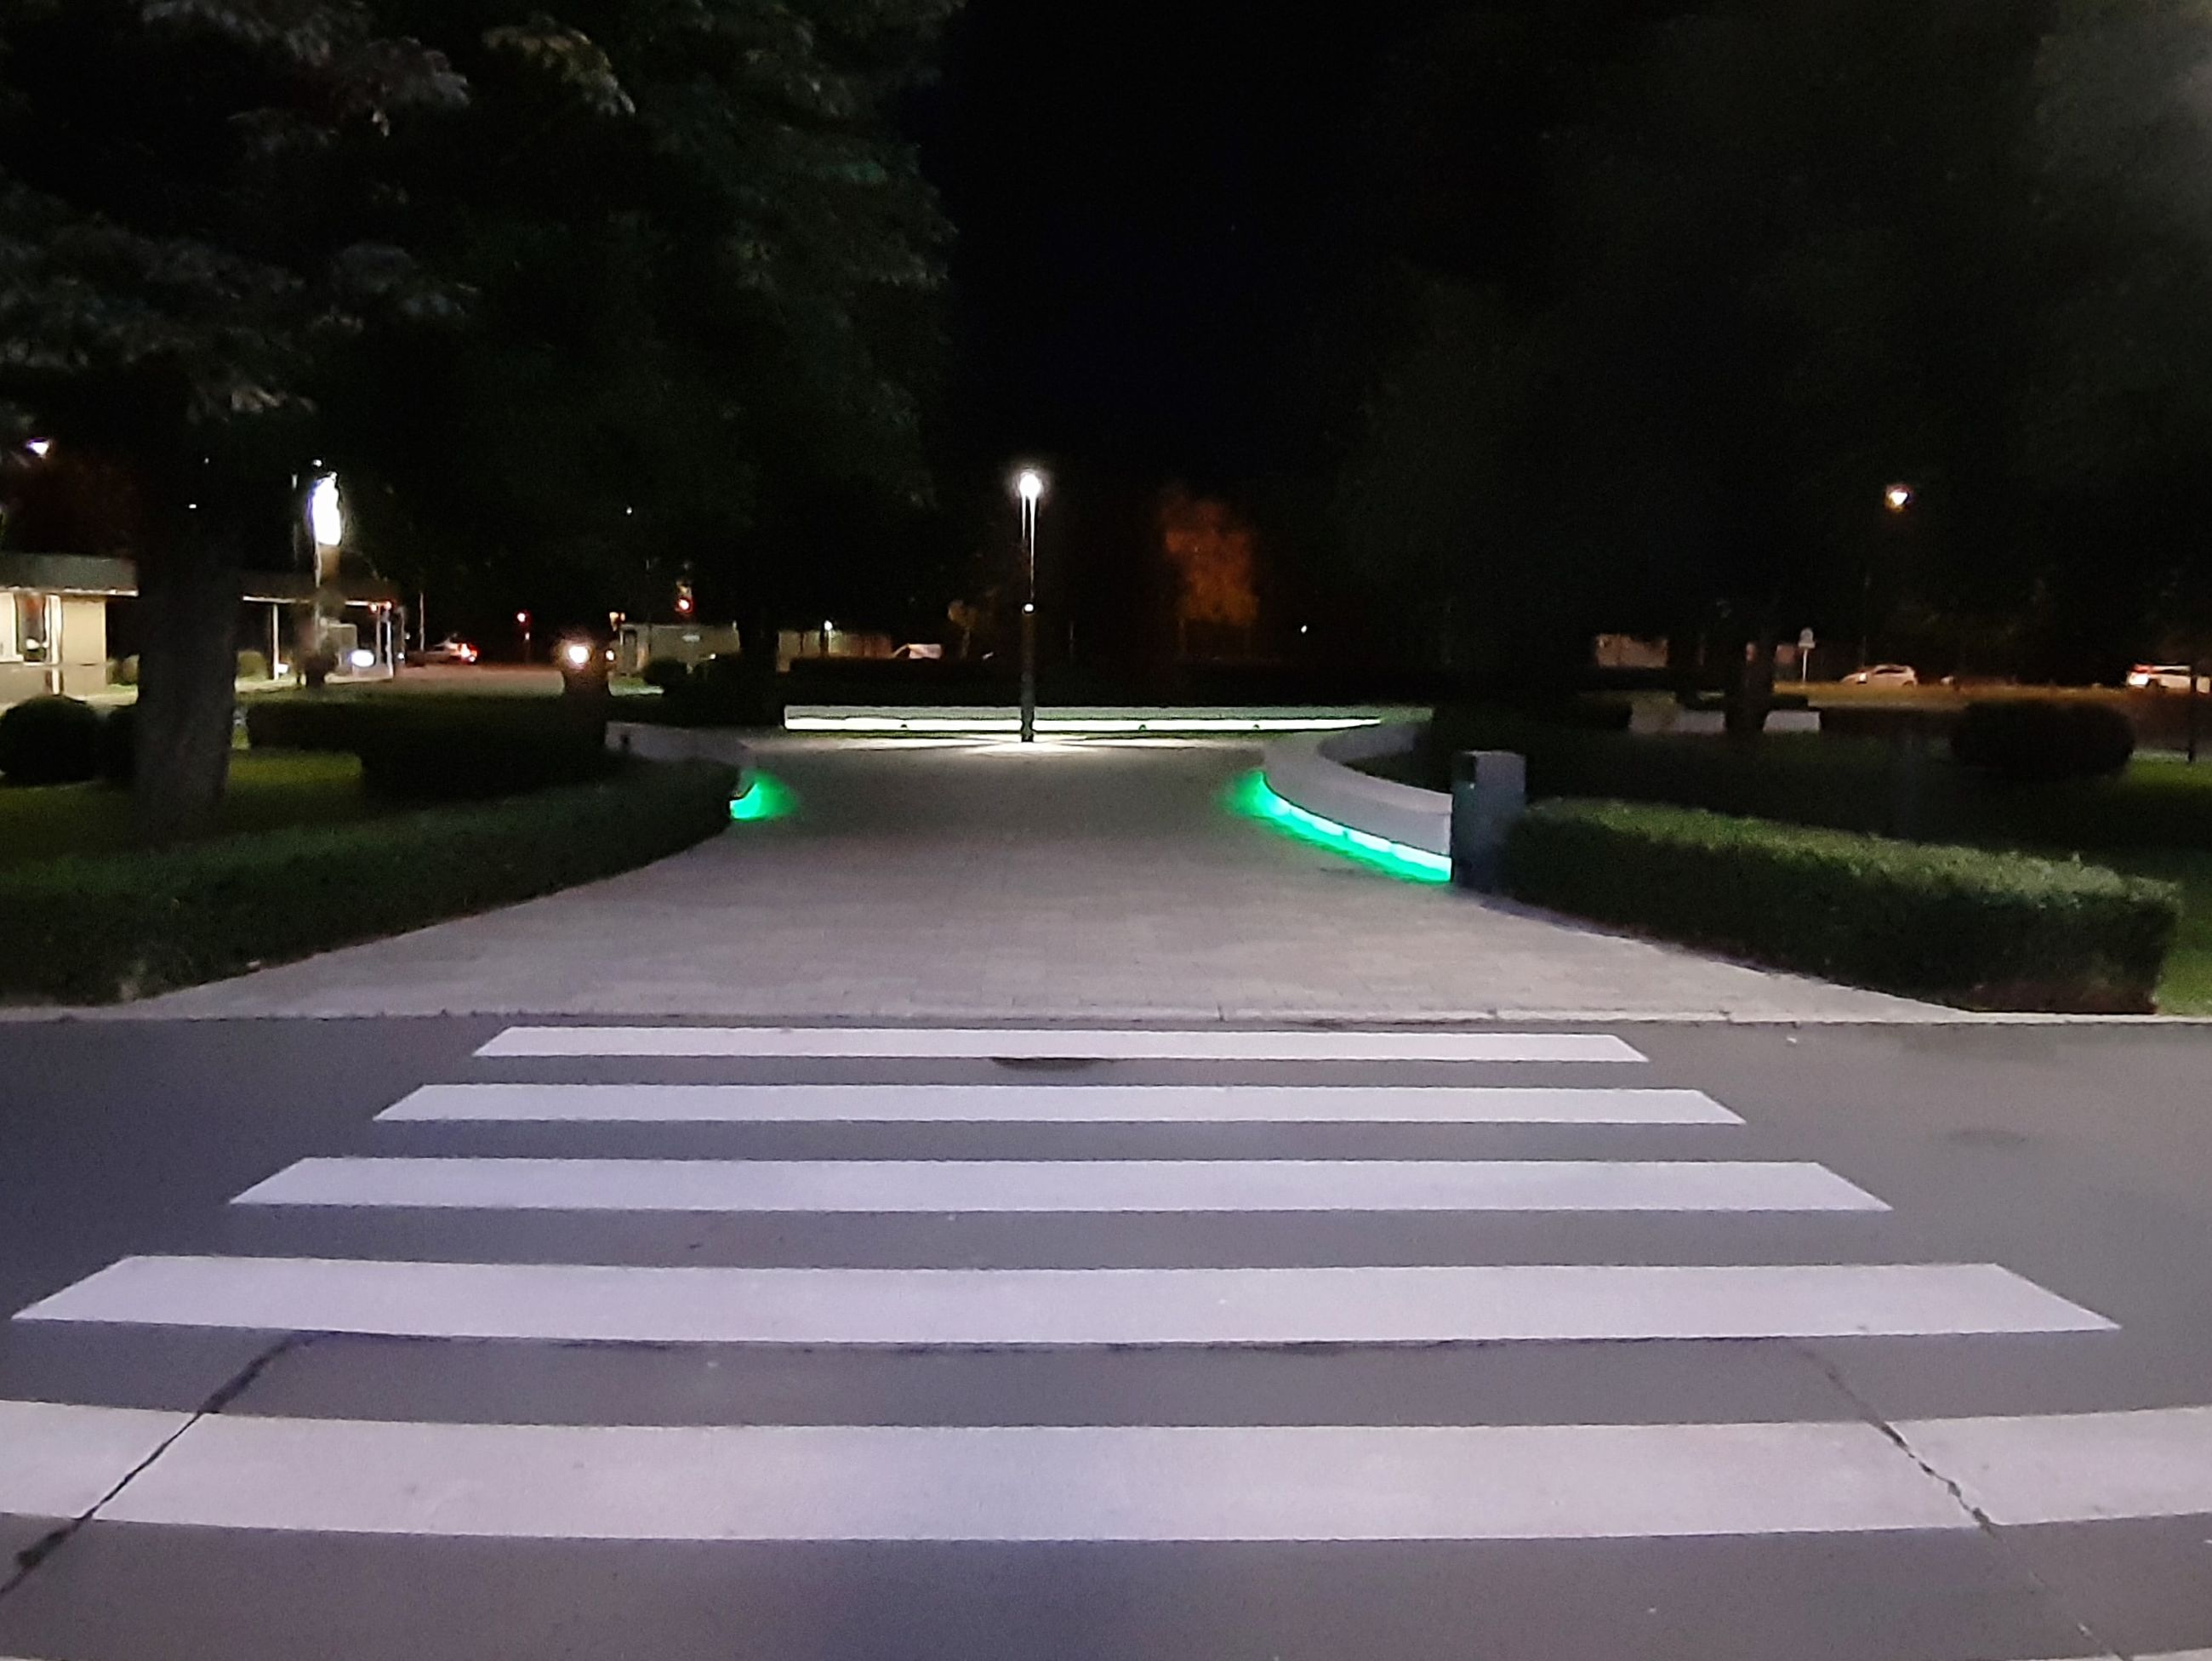 night, city, sign, illuminated, symbol, road marking, crosswalk, marking, road, street, zebra crossing, transportation, architecture, no people, crossing, nature, direction, the way forward, plant, building exterior, outdoors, light